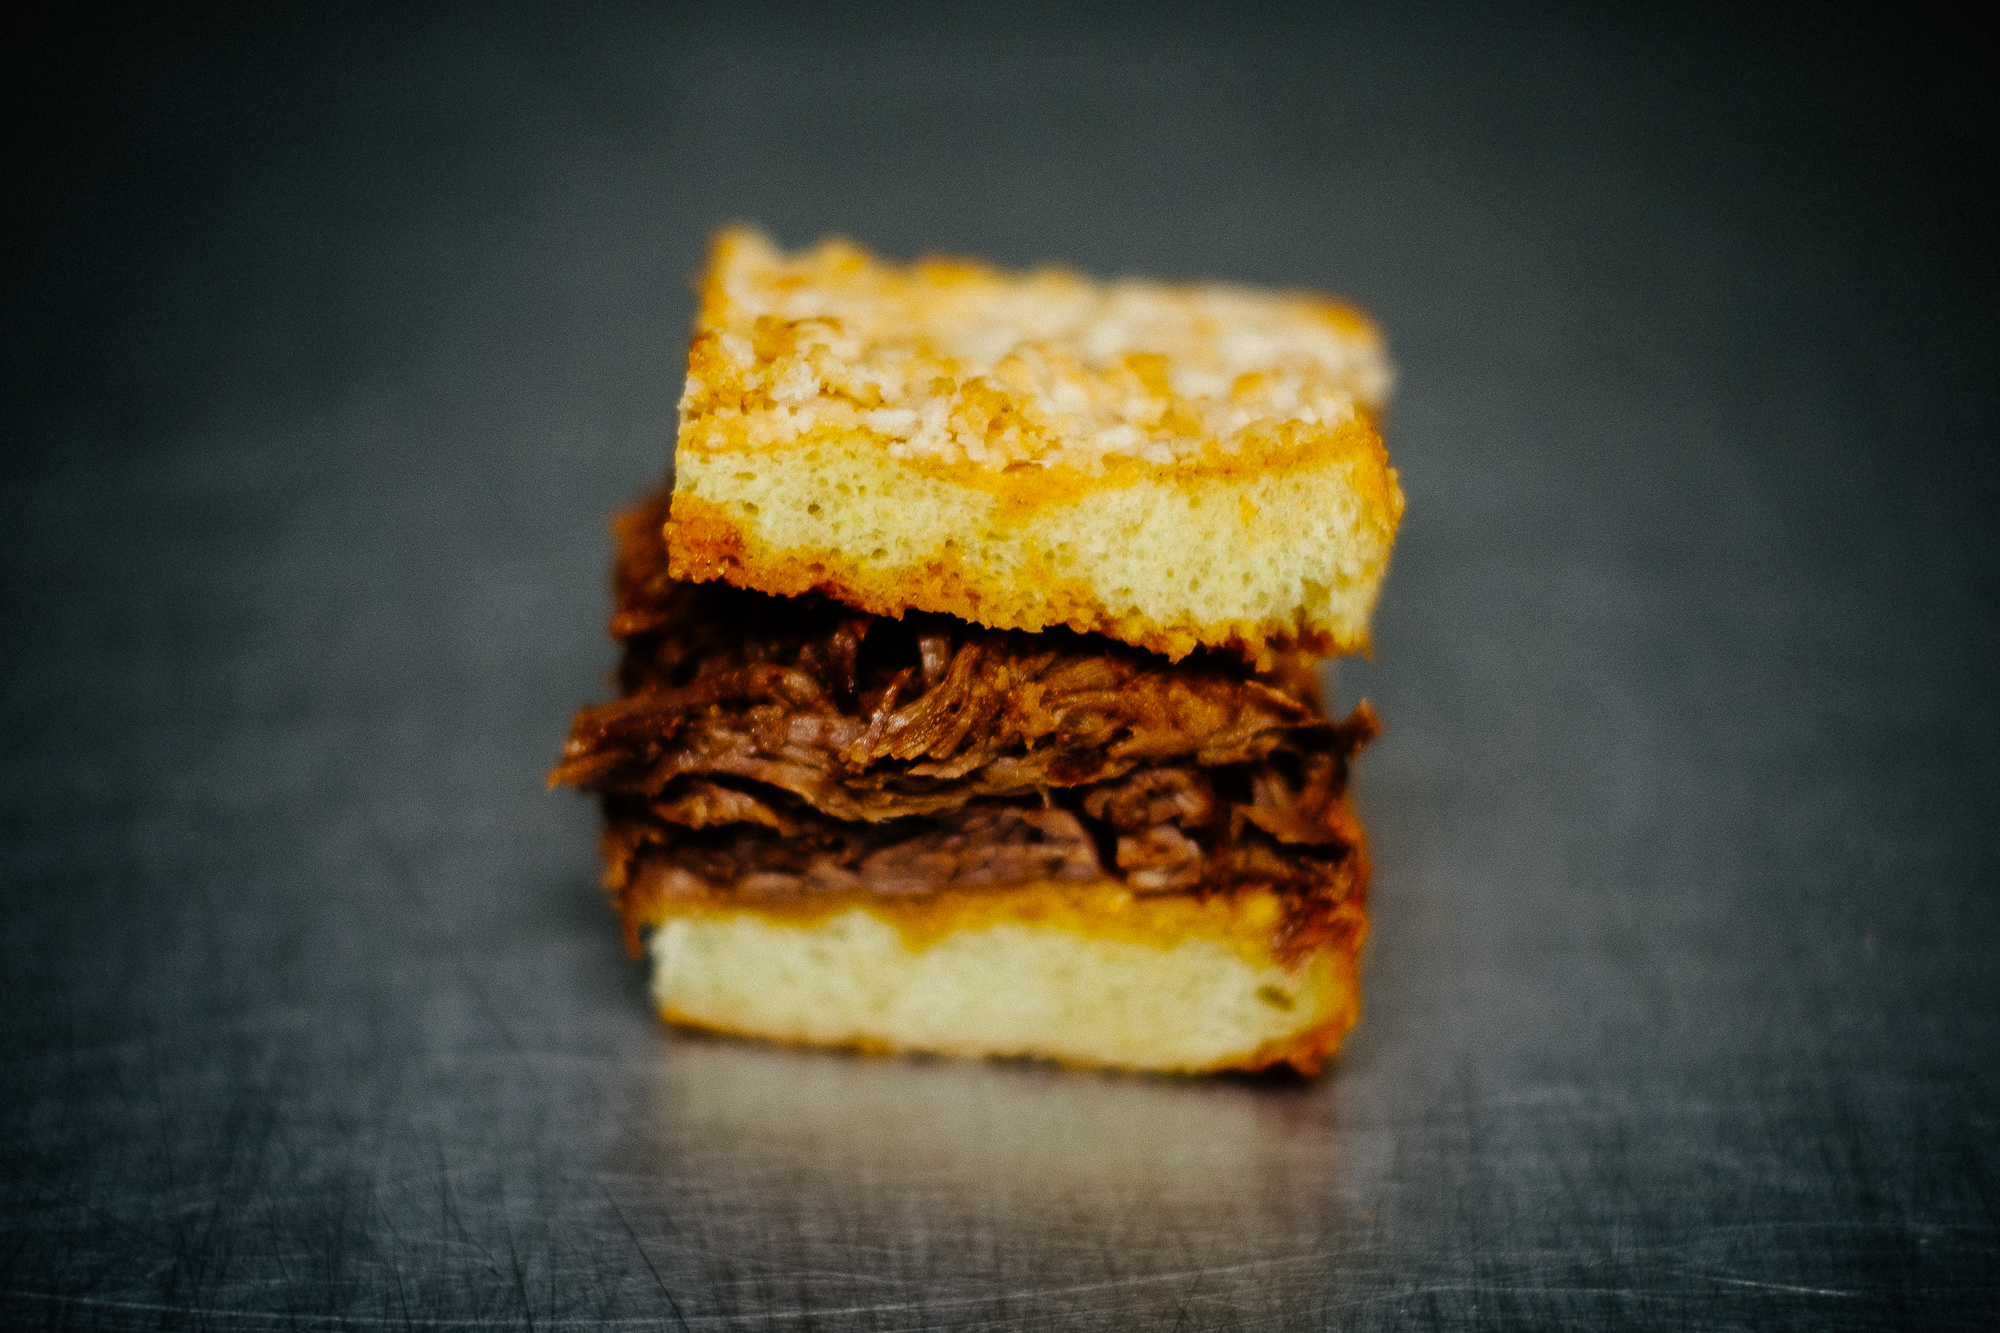 Here is the peek at our brisket—as a slider! We do all our sandwiches as sliders!